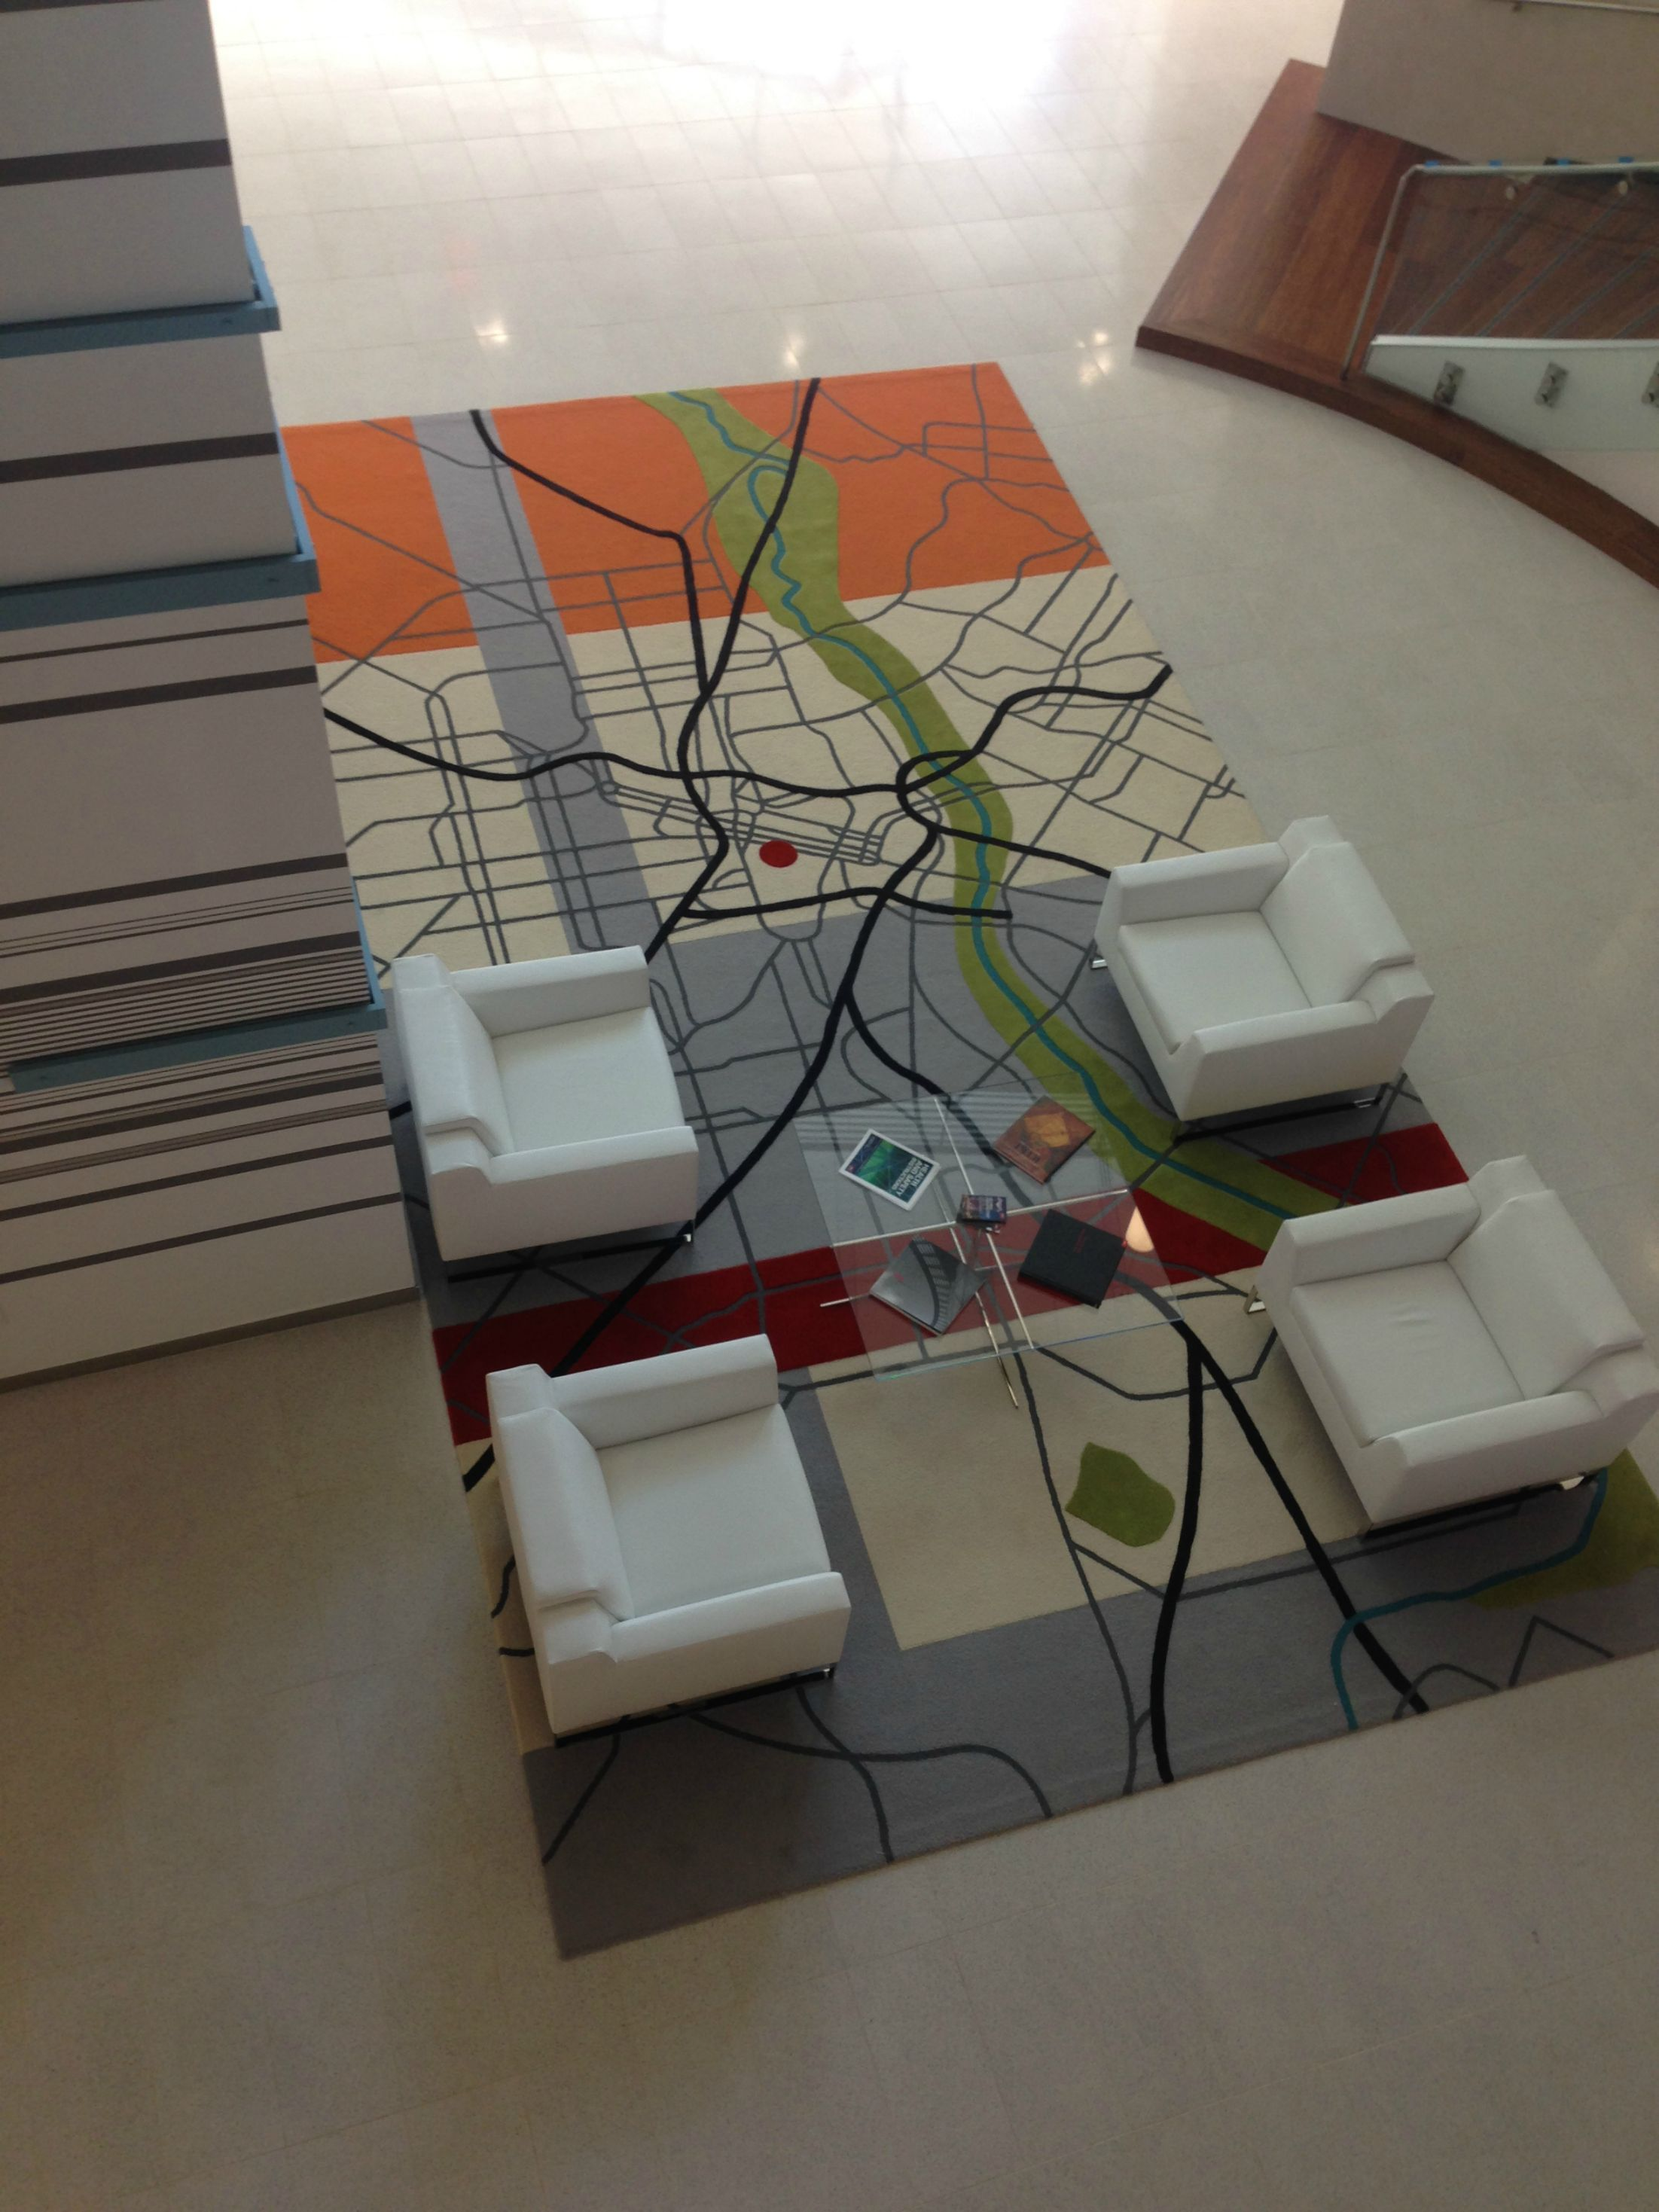 office rug. The New Rug In Our Office Lobby Is A Map Of City. Red Dot Where We Are Located. M